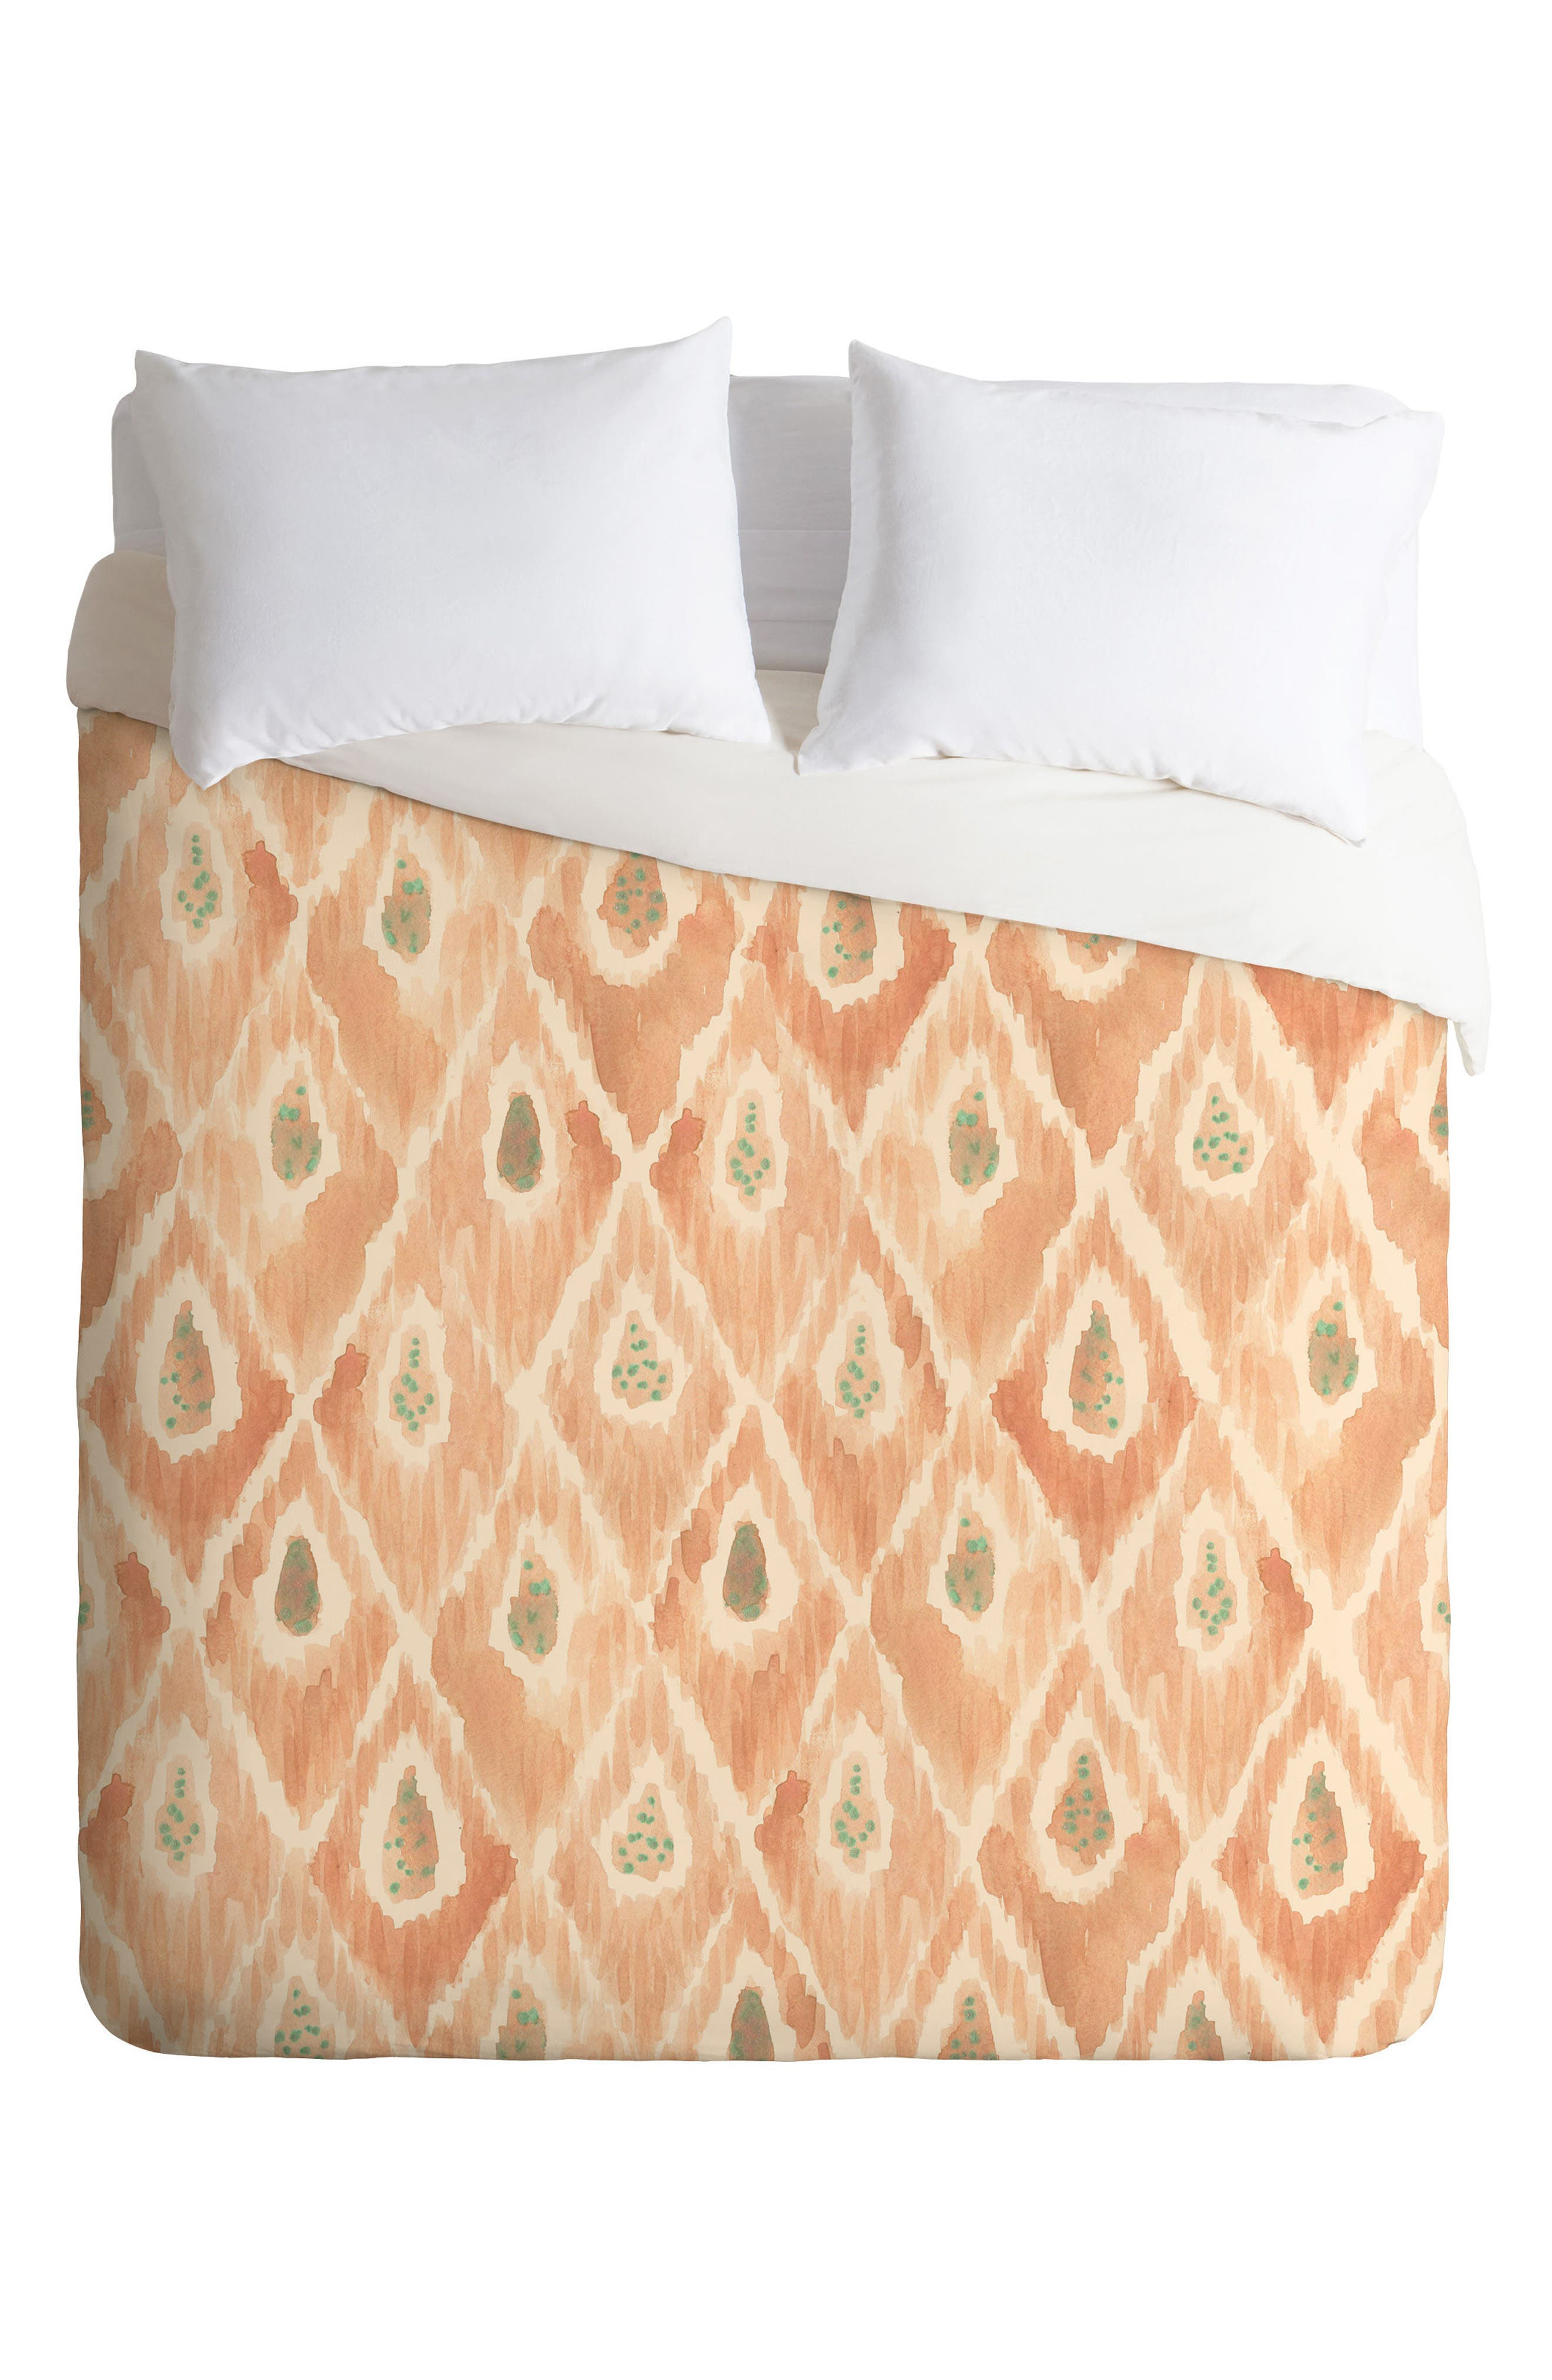 Catch Me Duvet Cover & Sham Set,                             Main thumbnail 1, color,                             800